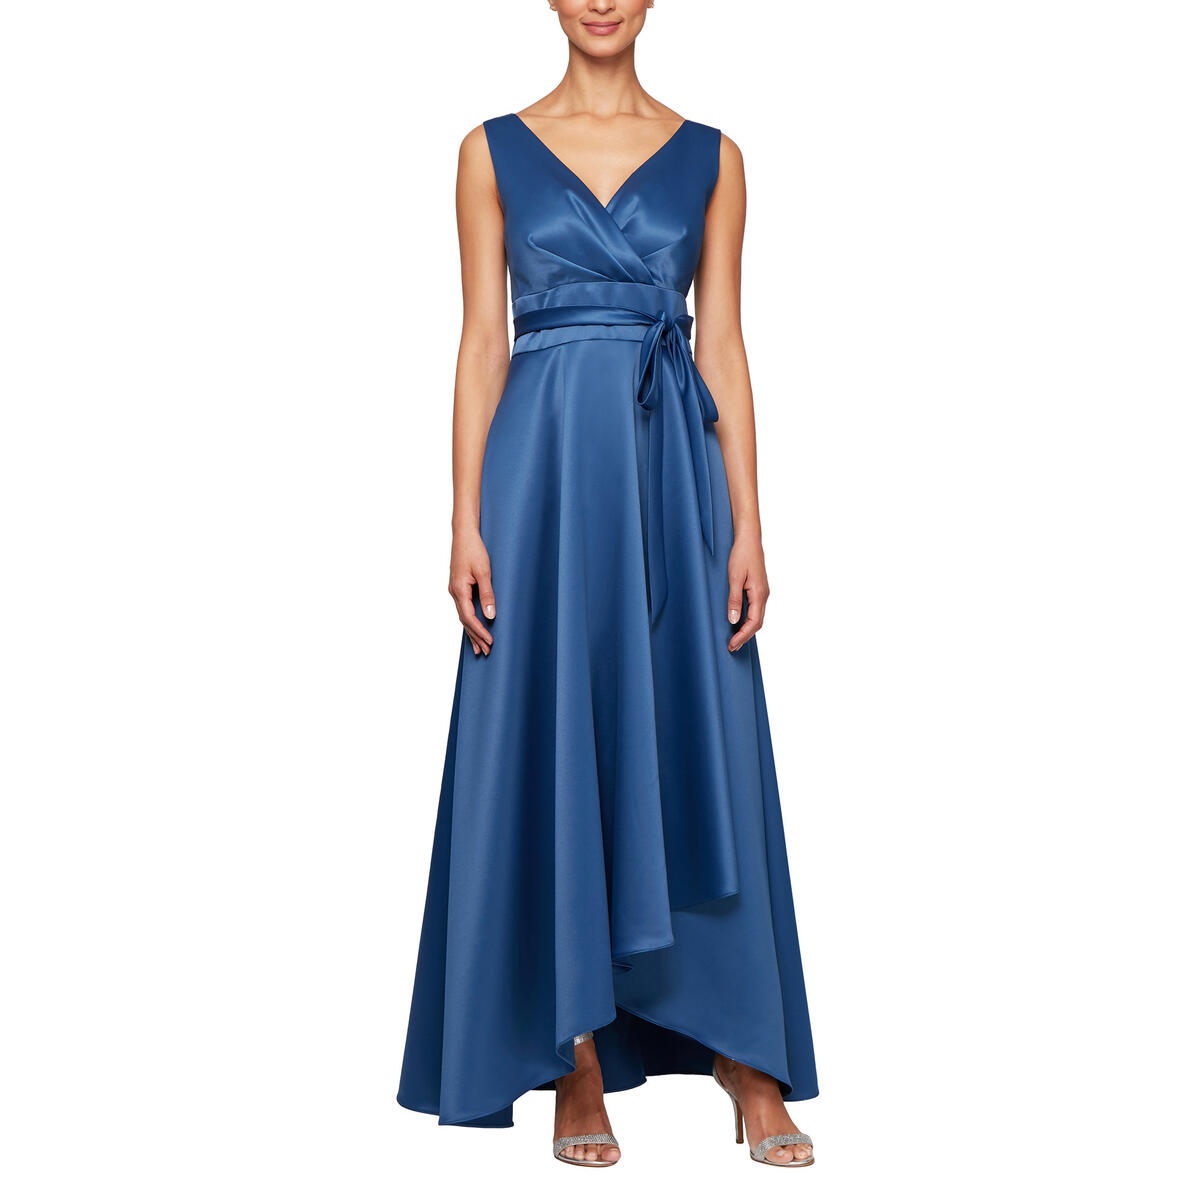 ALEX APPAREL GROUP INC - Long Sleeveless Ball Gown